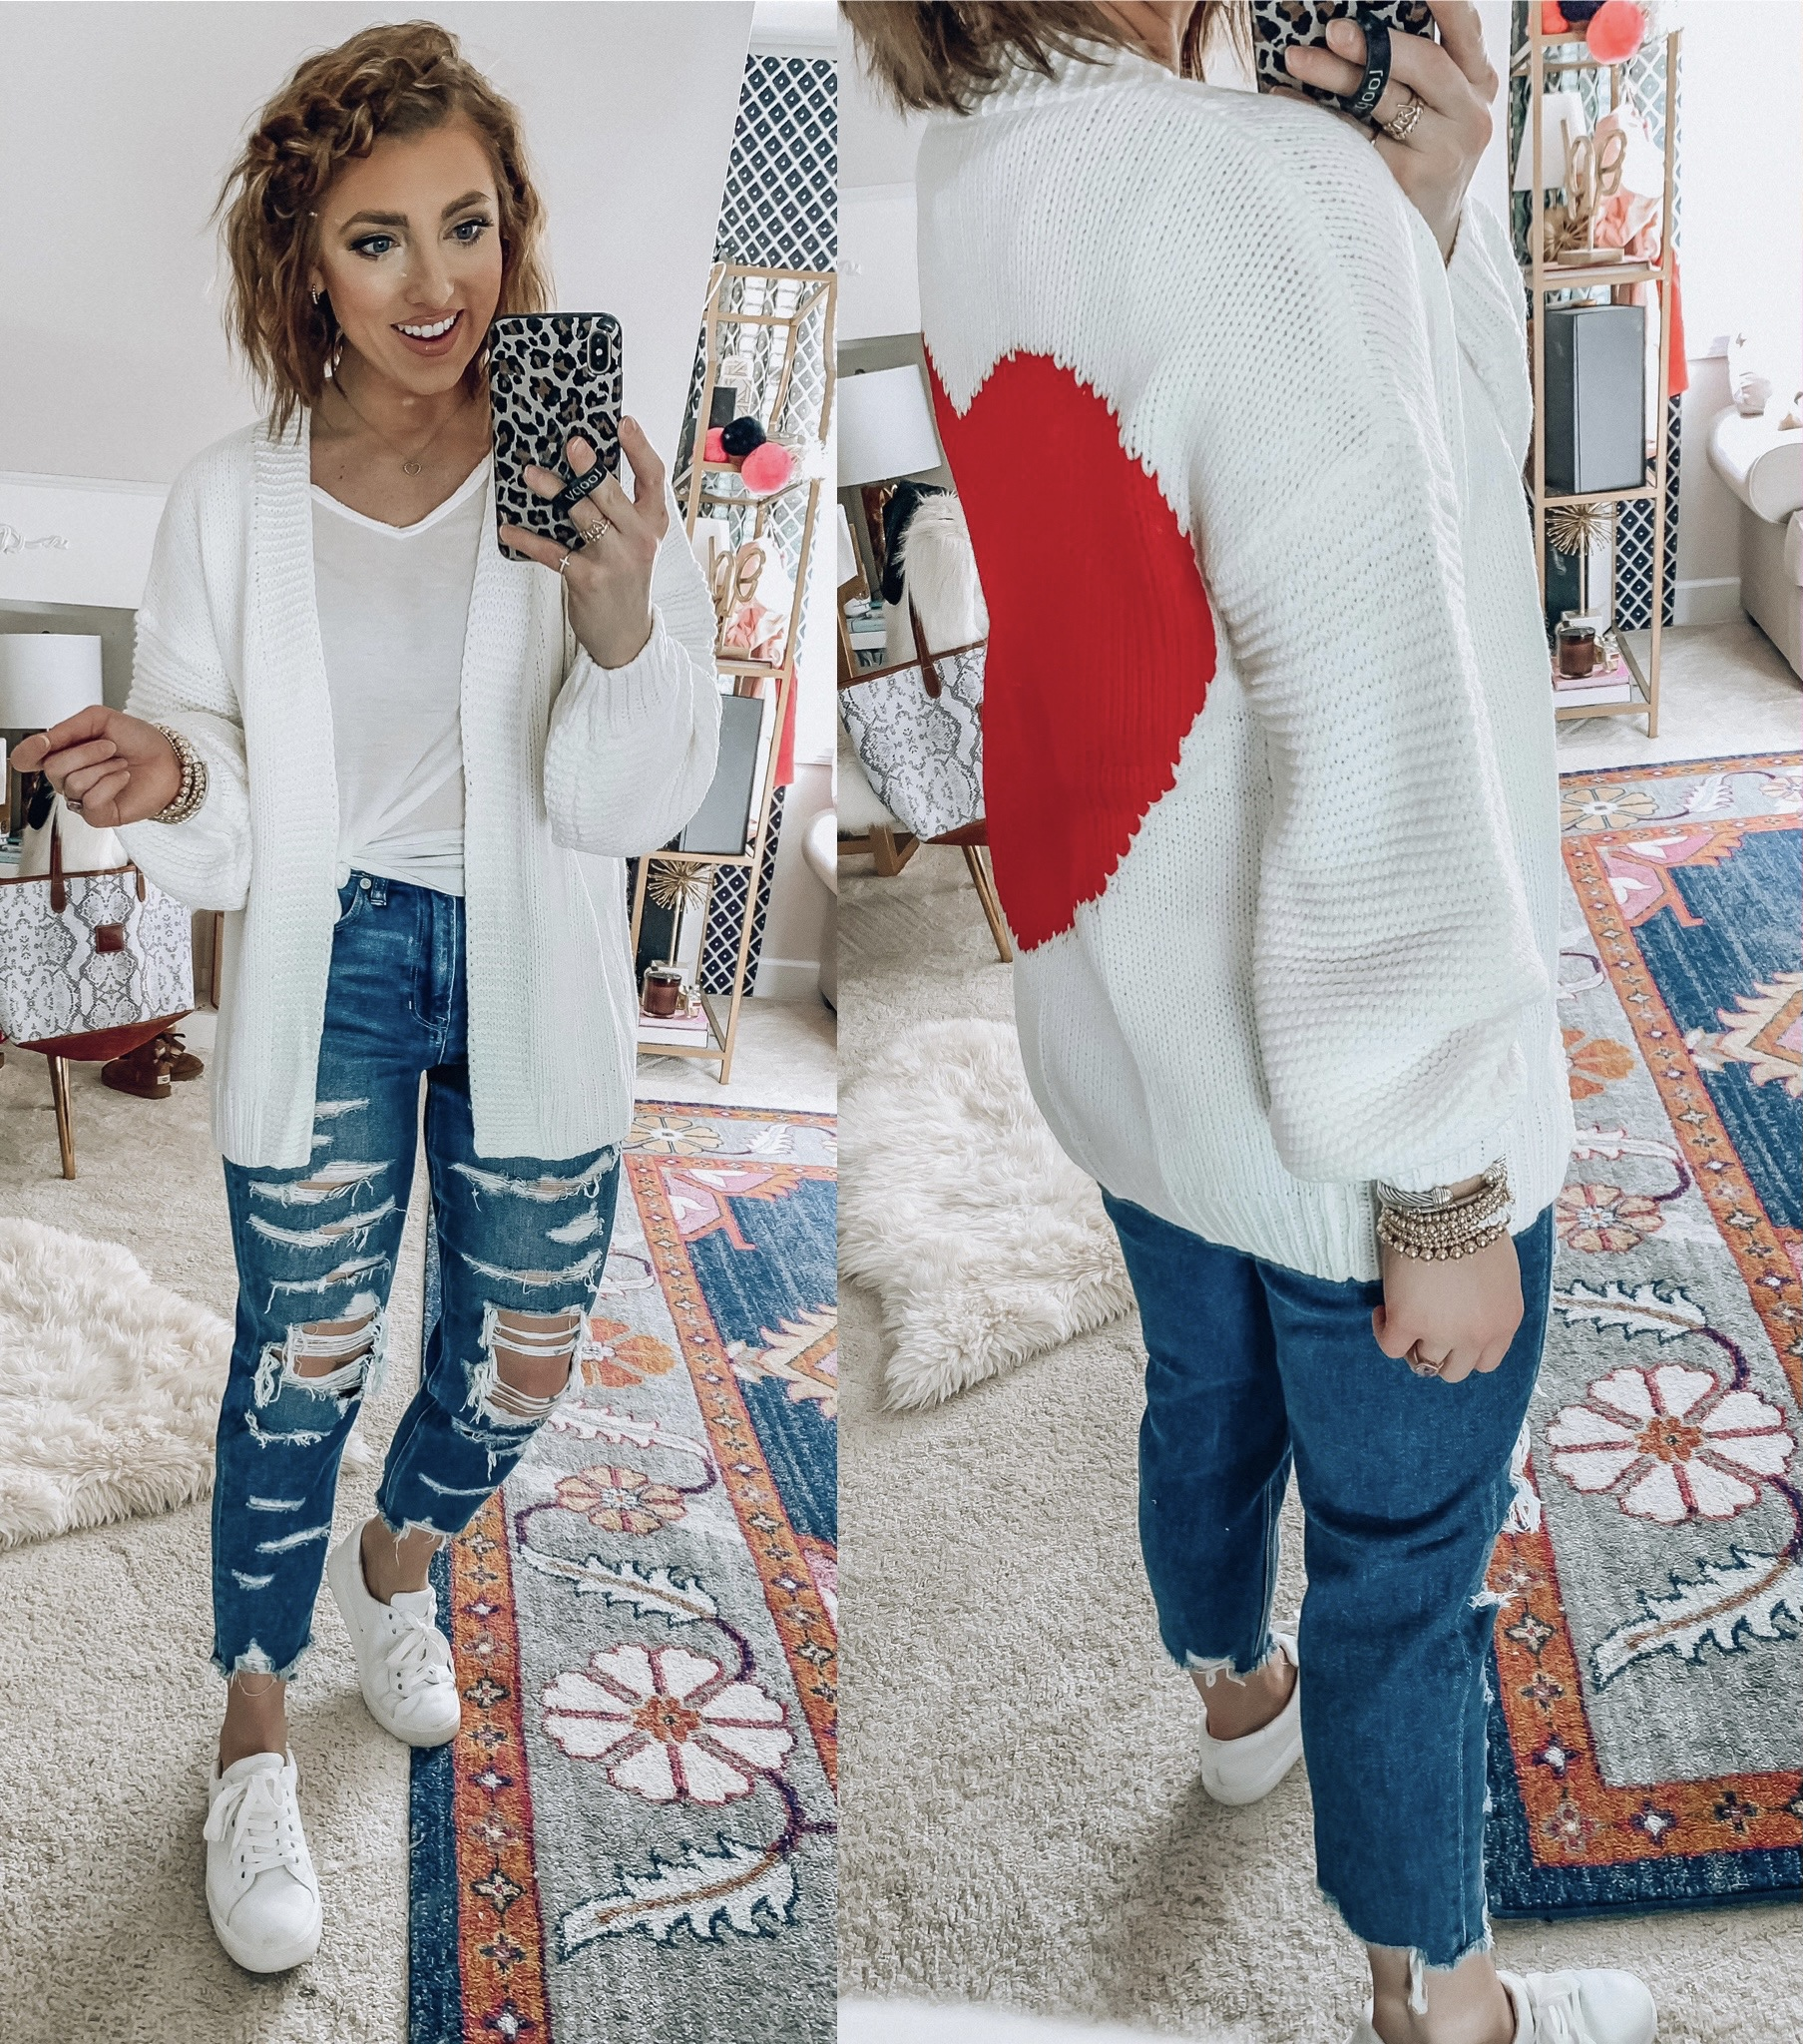 Amazon Friday: Vol. 1 - Valentine Sweaters and Random Useful Finds - Something Delightful Blog #AmazonFriday #ValentinesDaySweater #ValentinesDay #AffordableFashion #AmazonFashion